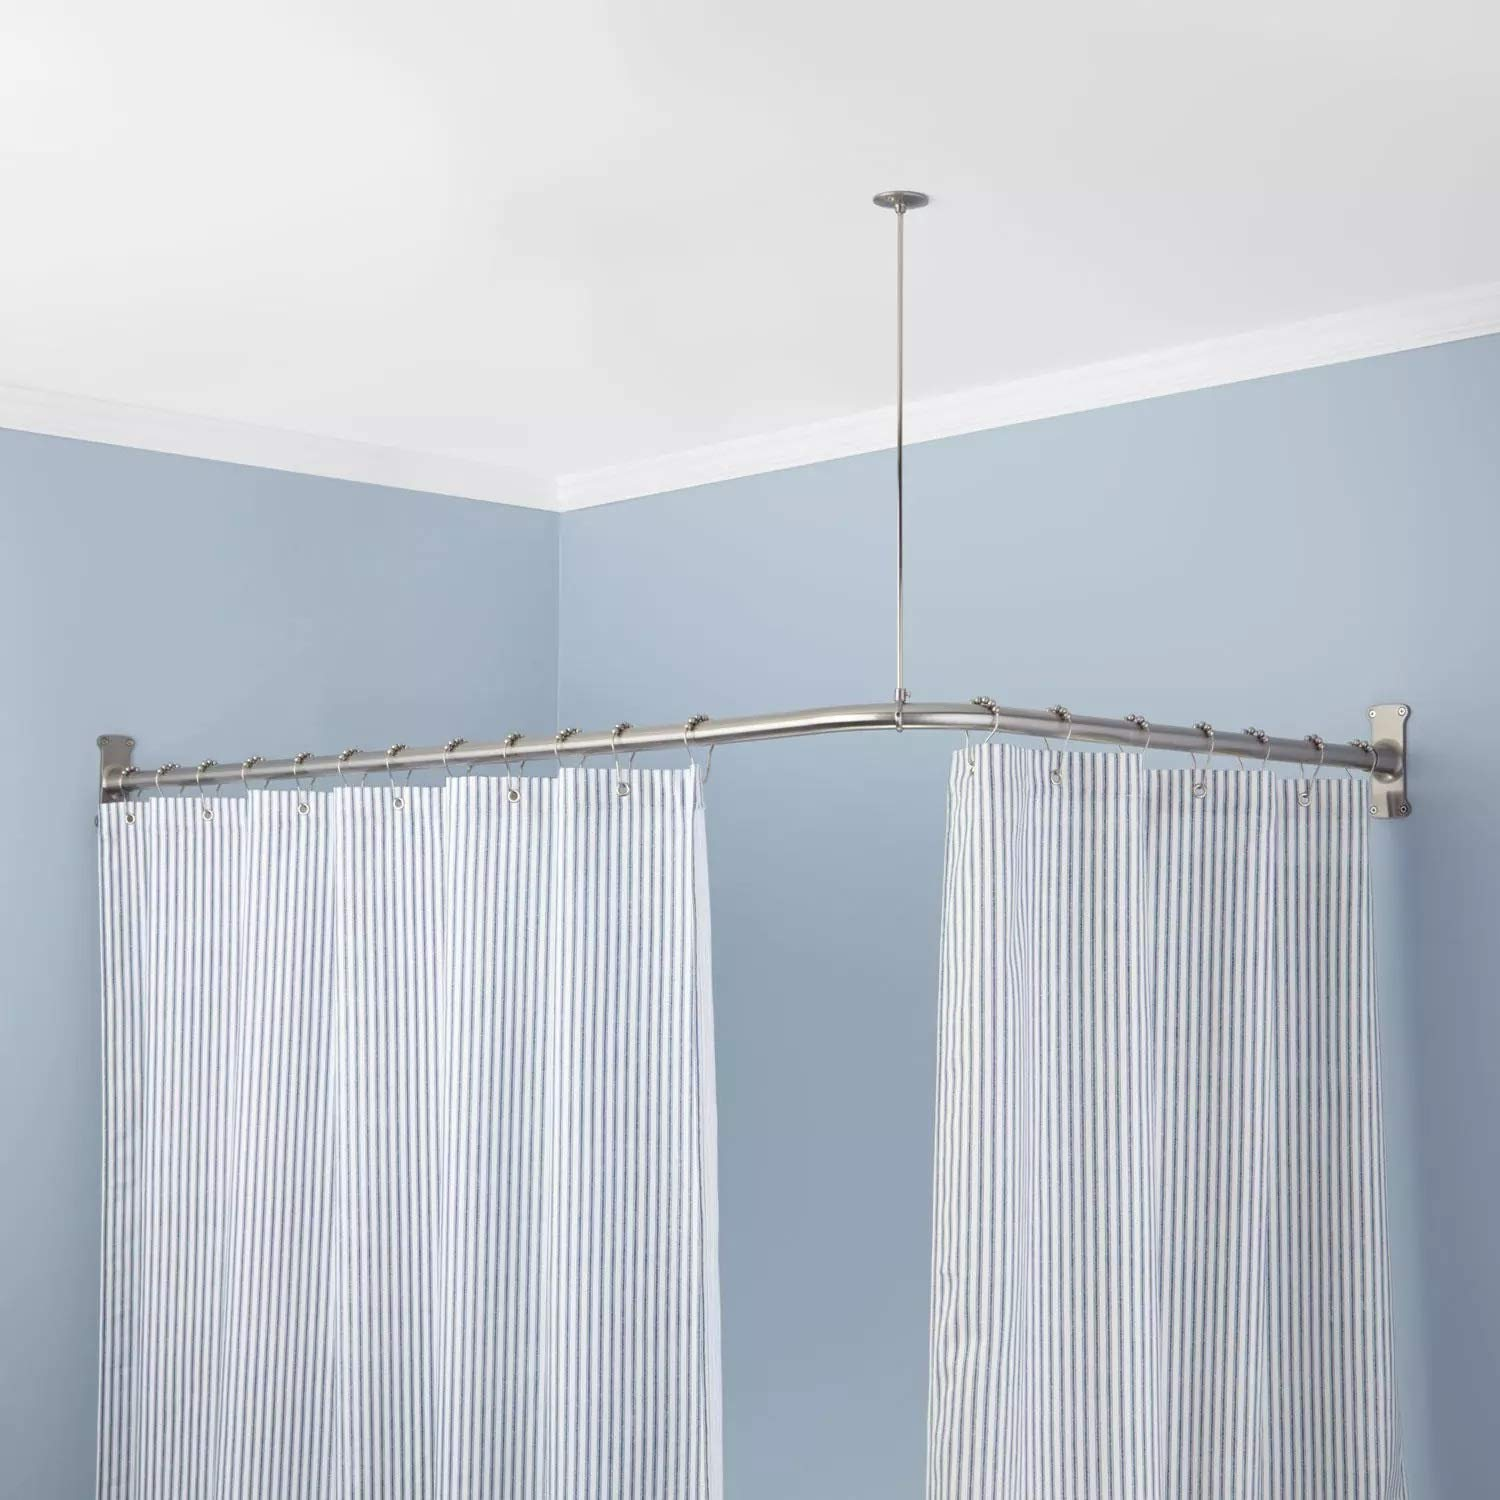 Naiture Stainless Steel 60'' x 48'' Corner Shower Curtain Rod with Ceiling Support, Brushed Nickel Finish